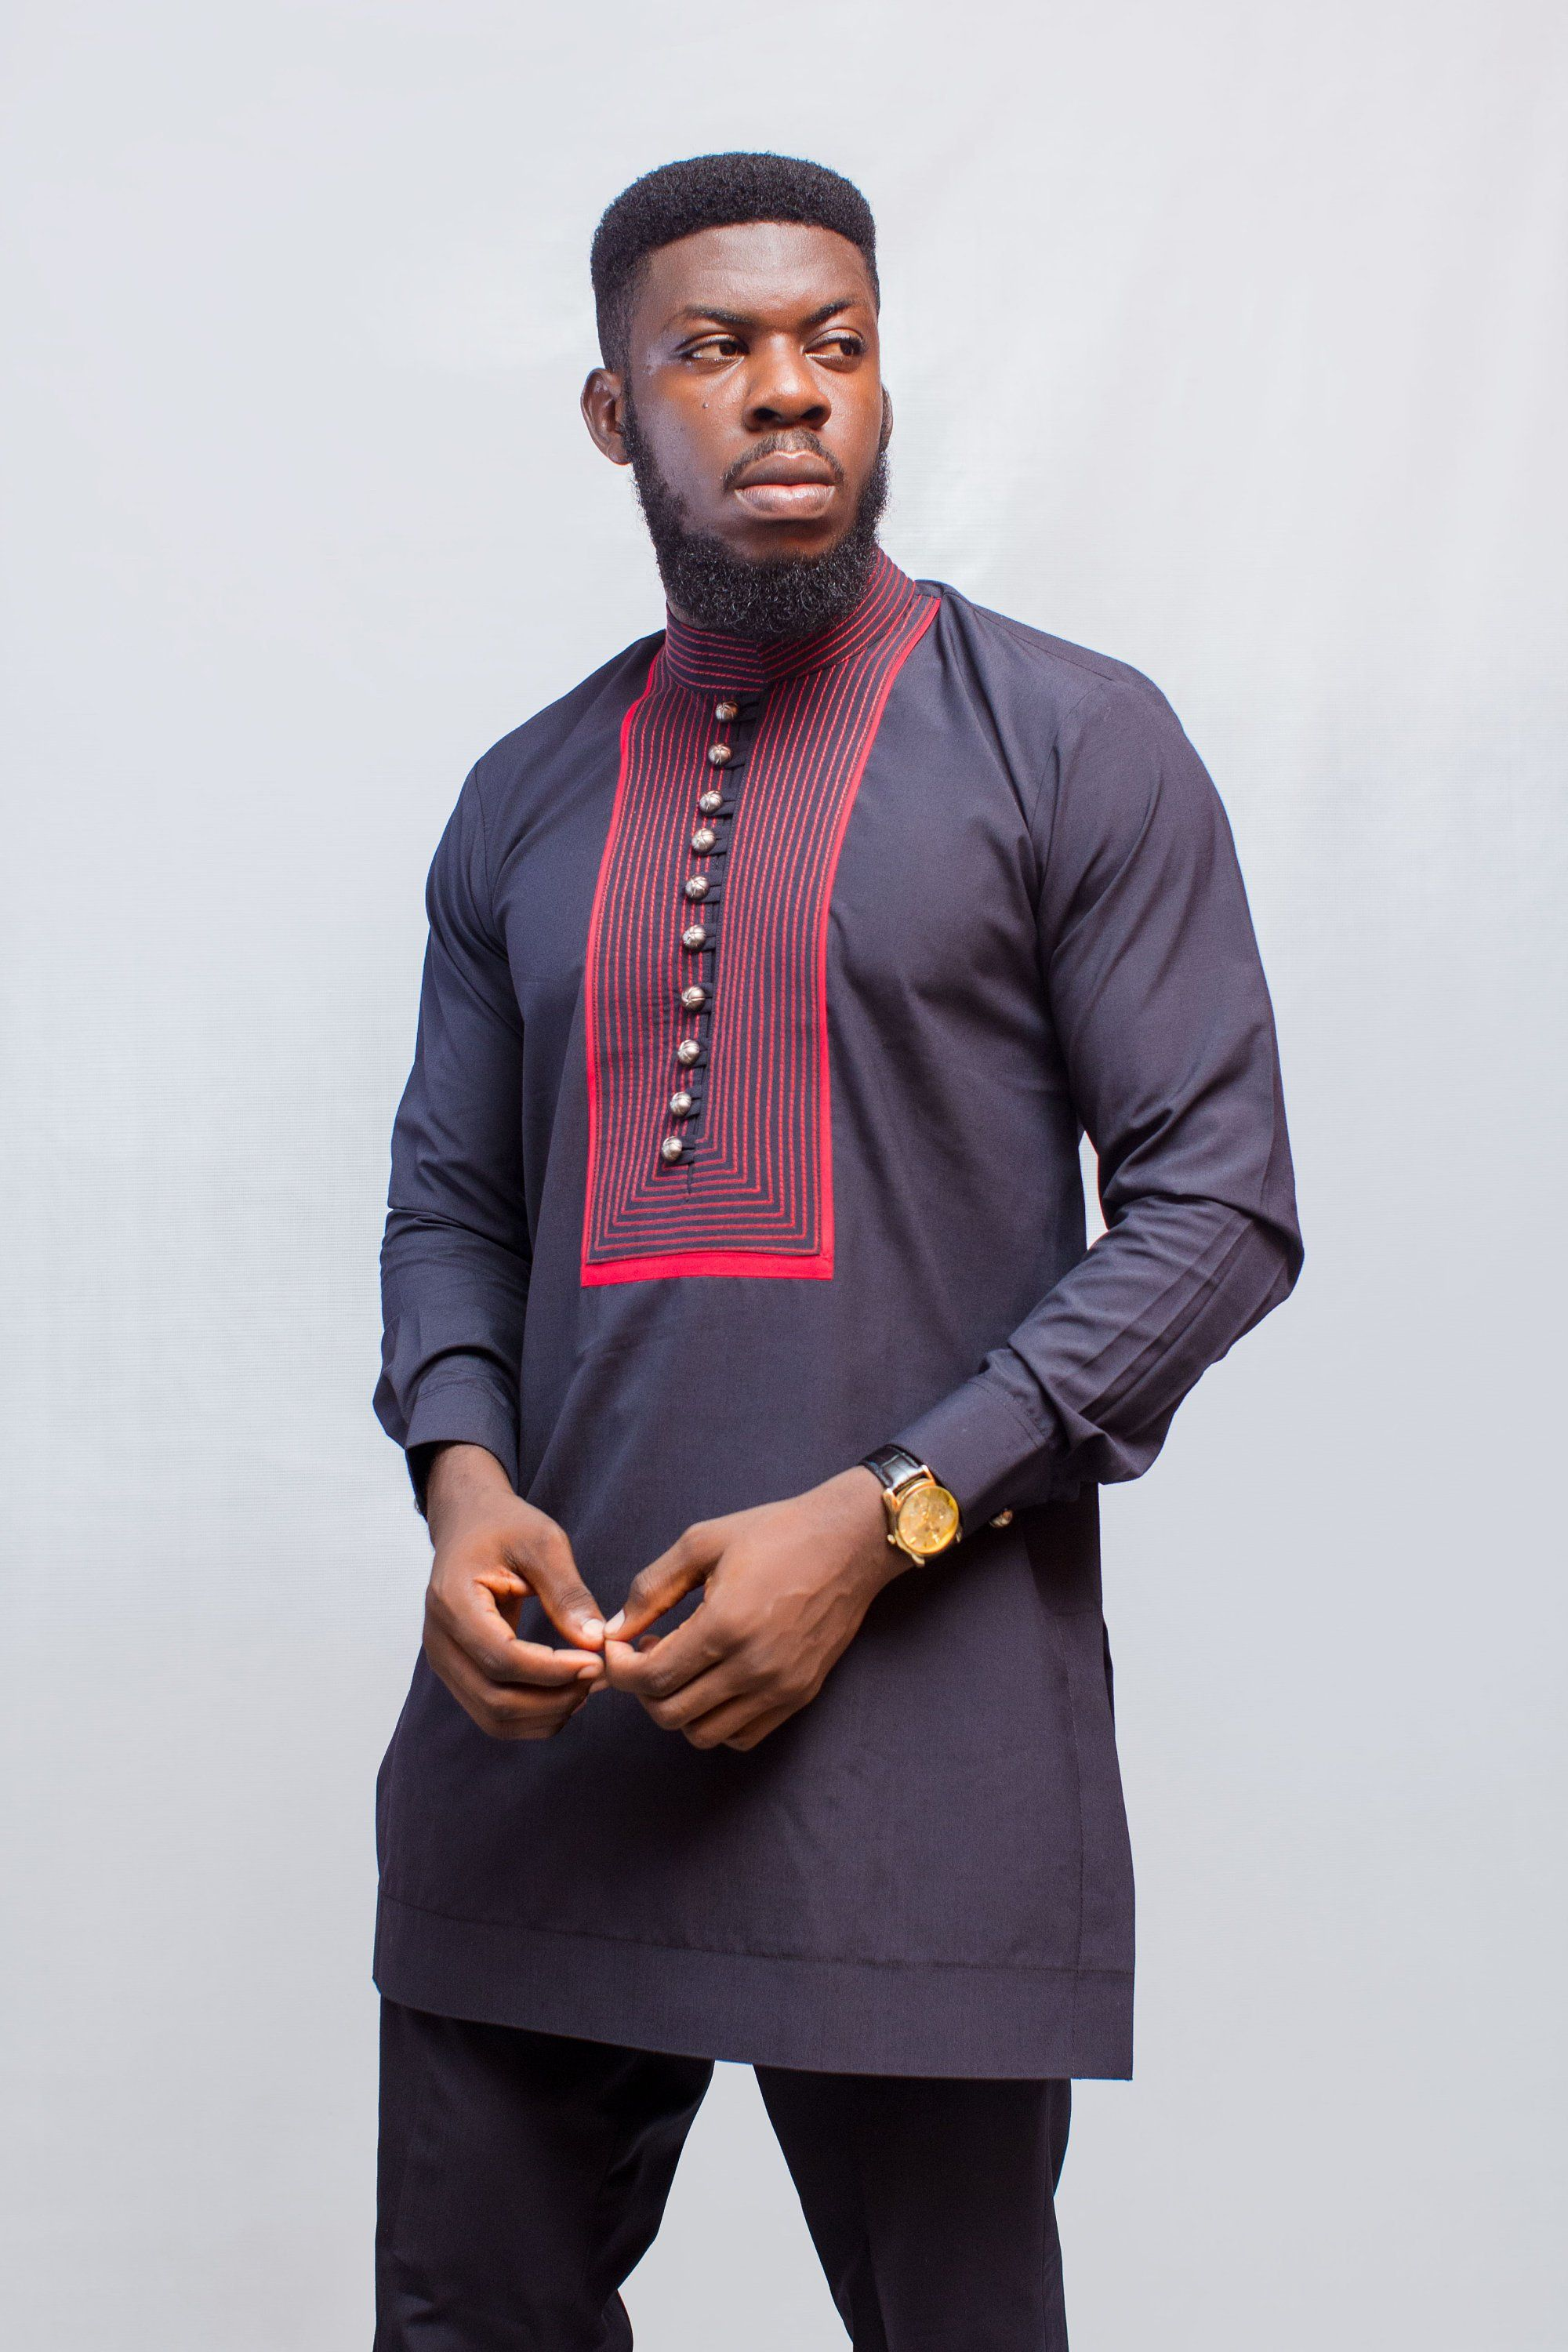 African men clothing fathers day gift gift for him